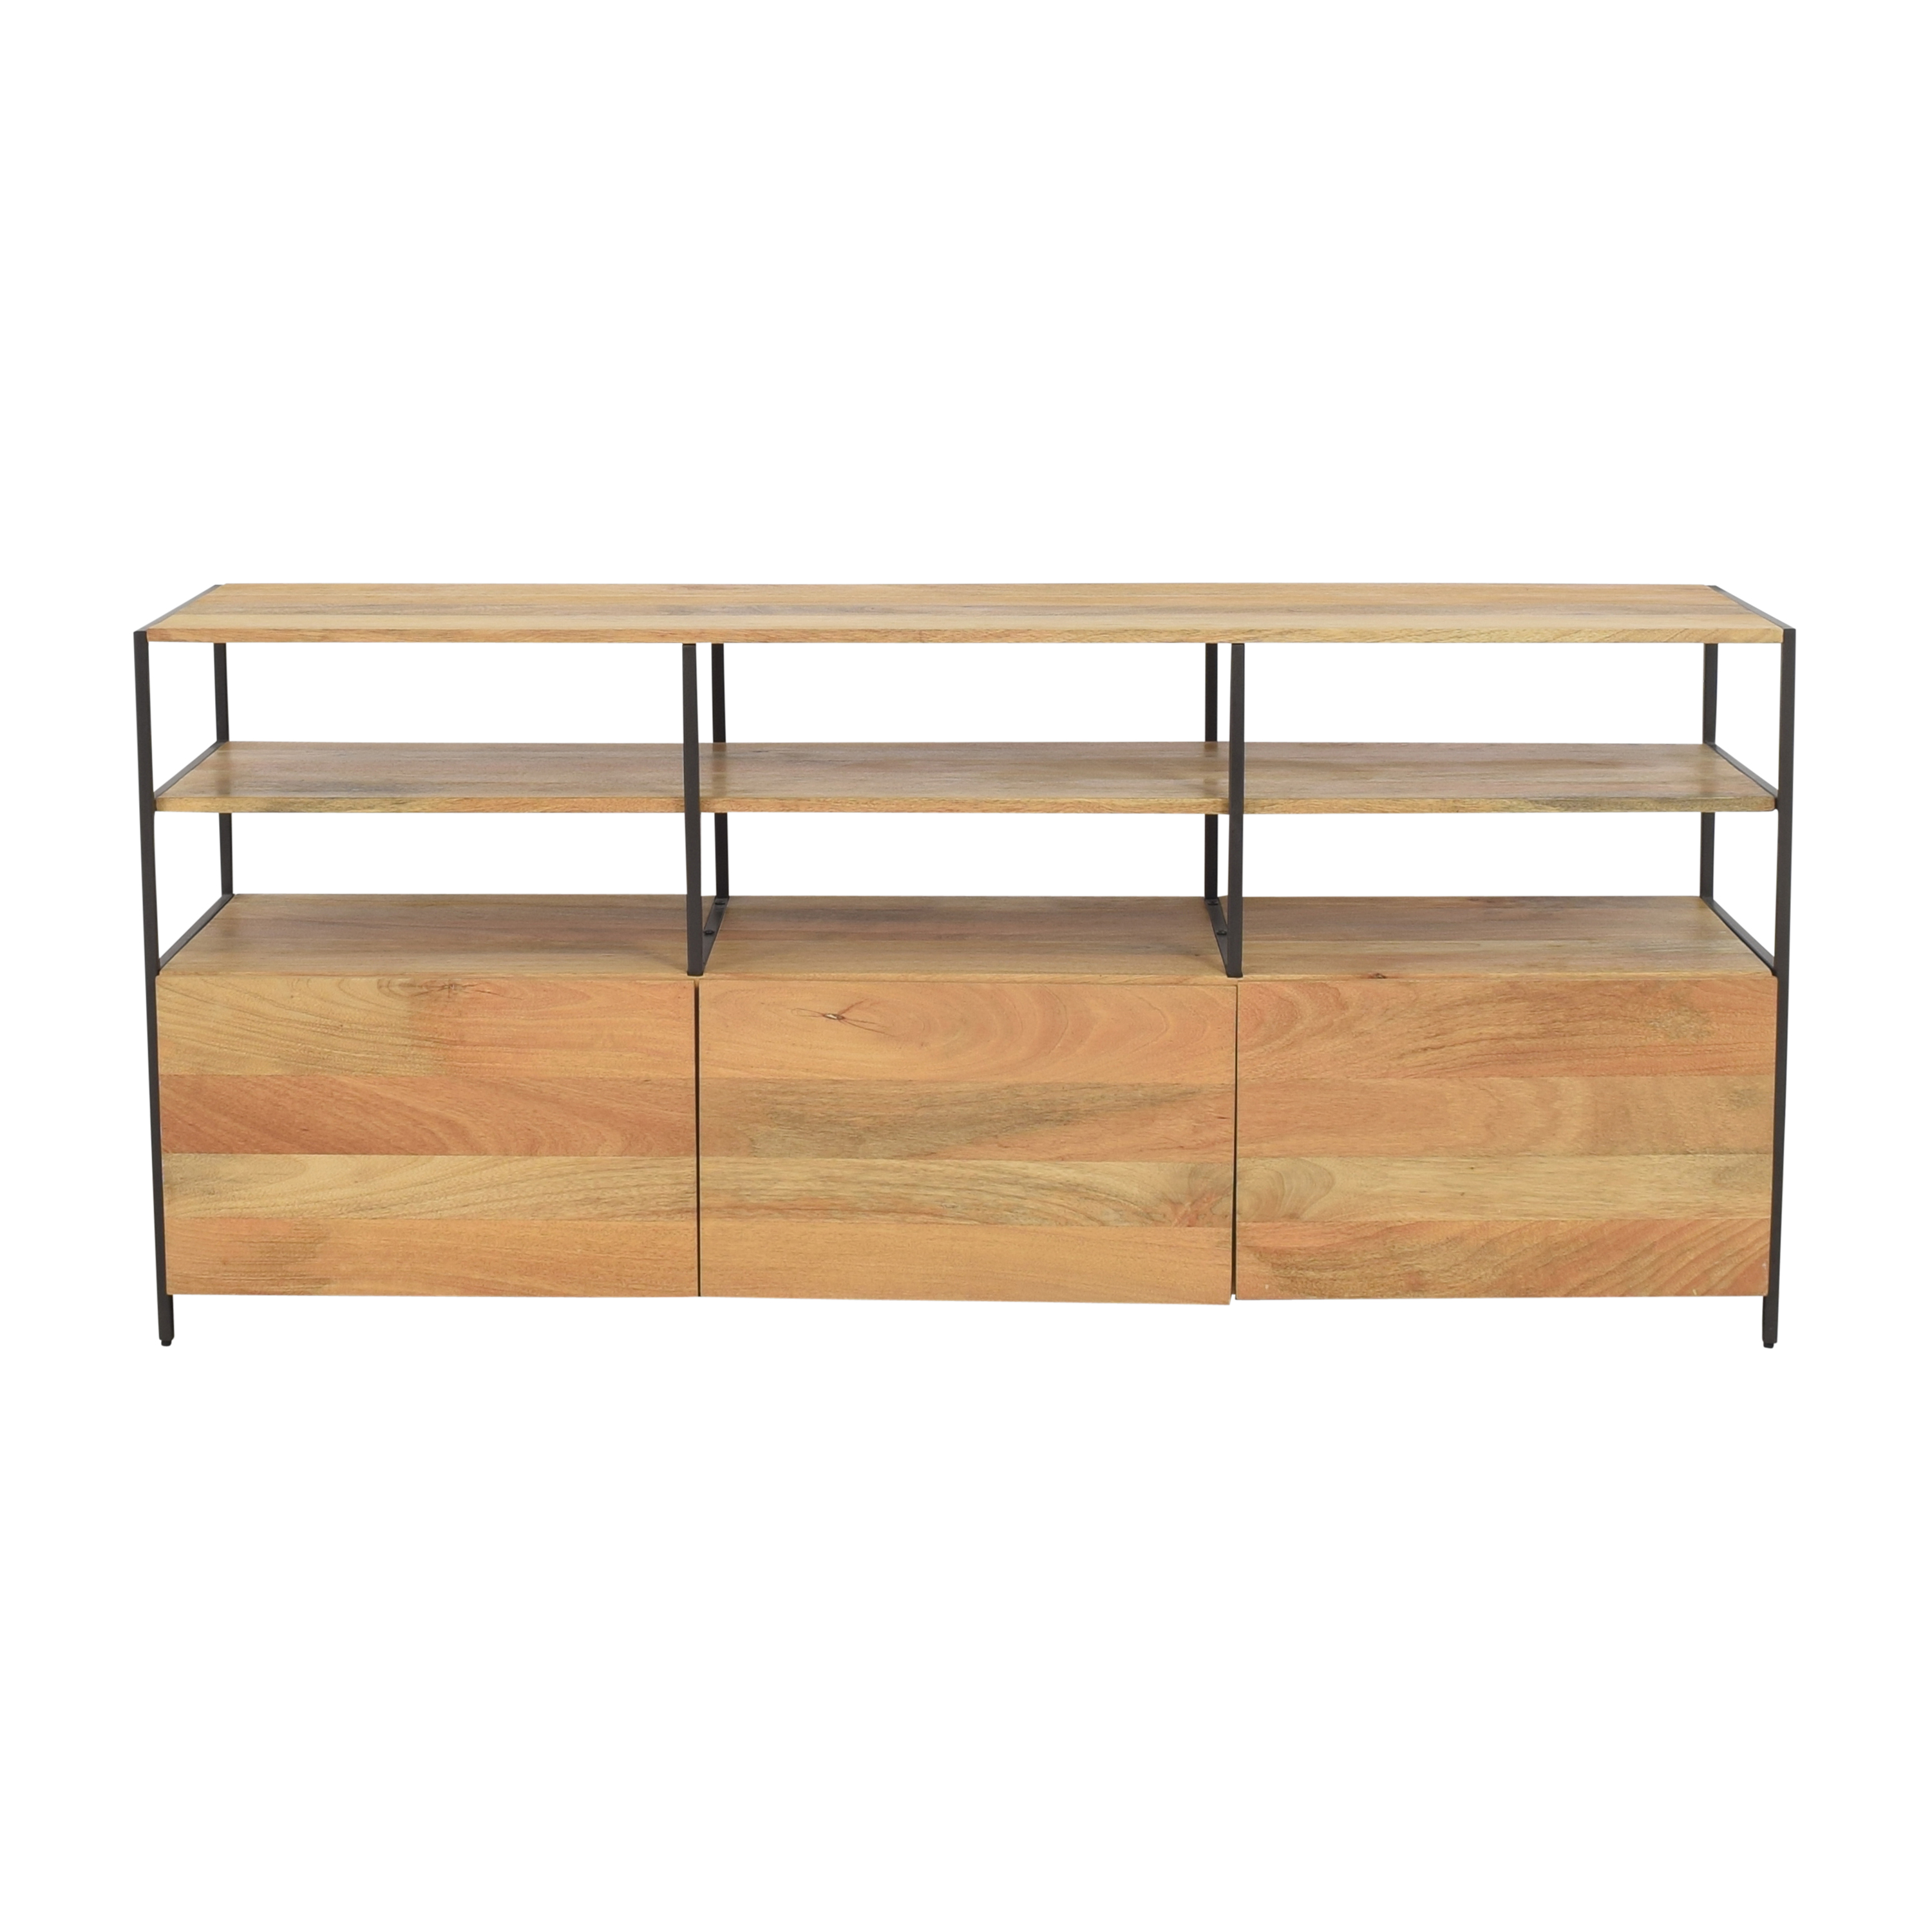 West Elm West Elm Industrial Modular Media Console ct